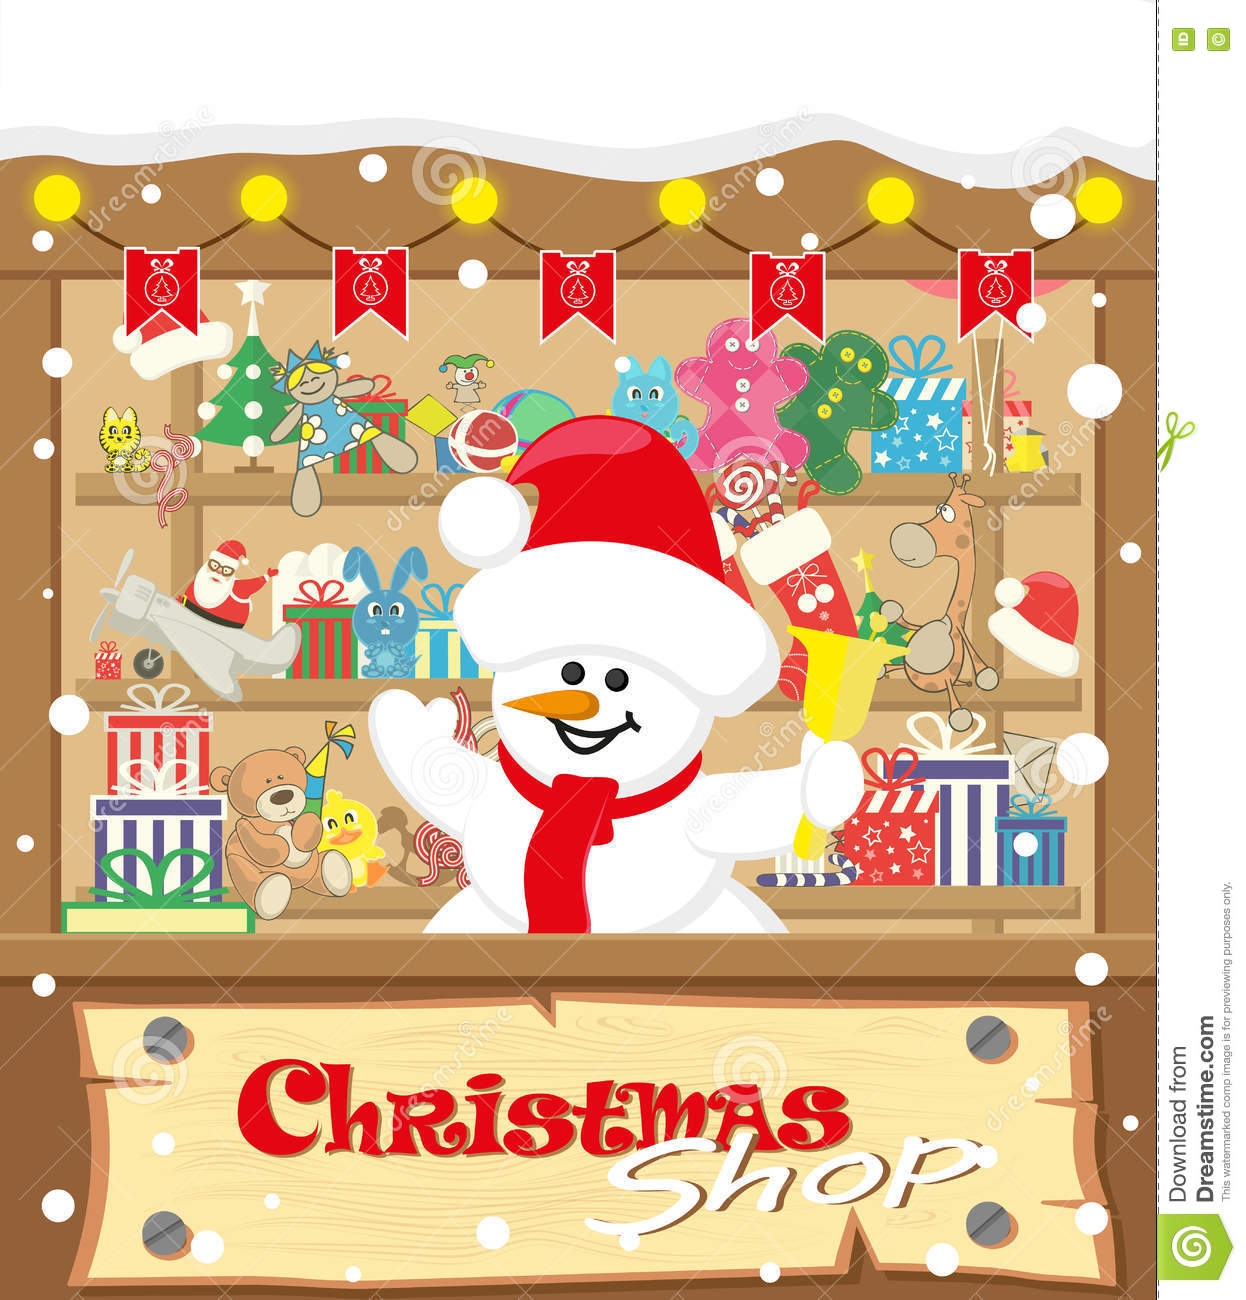 Vector Banner Christmas Shop Wih Snowman And Gifts, Toys